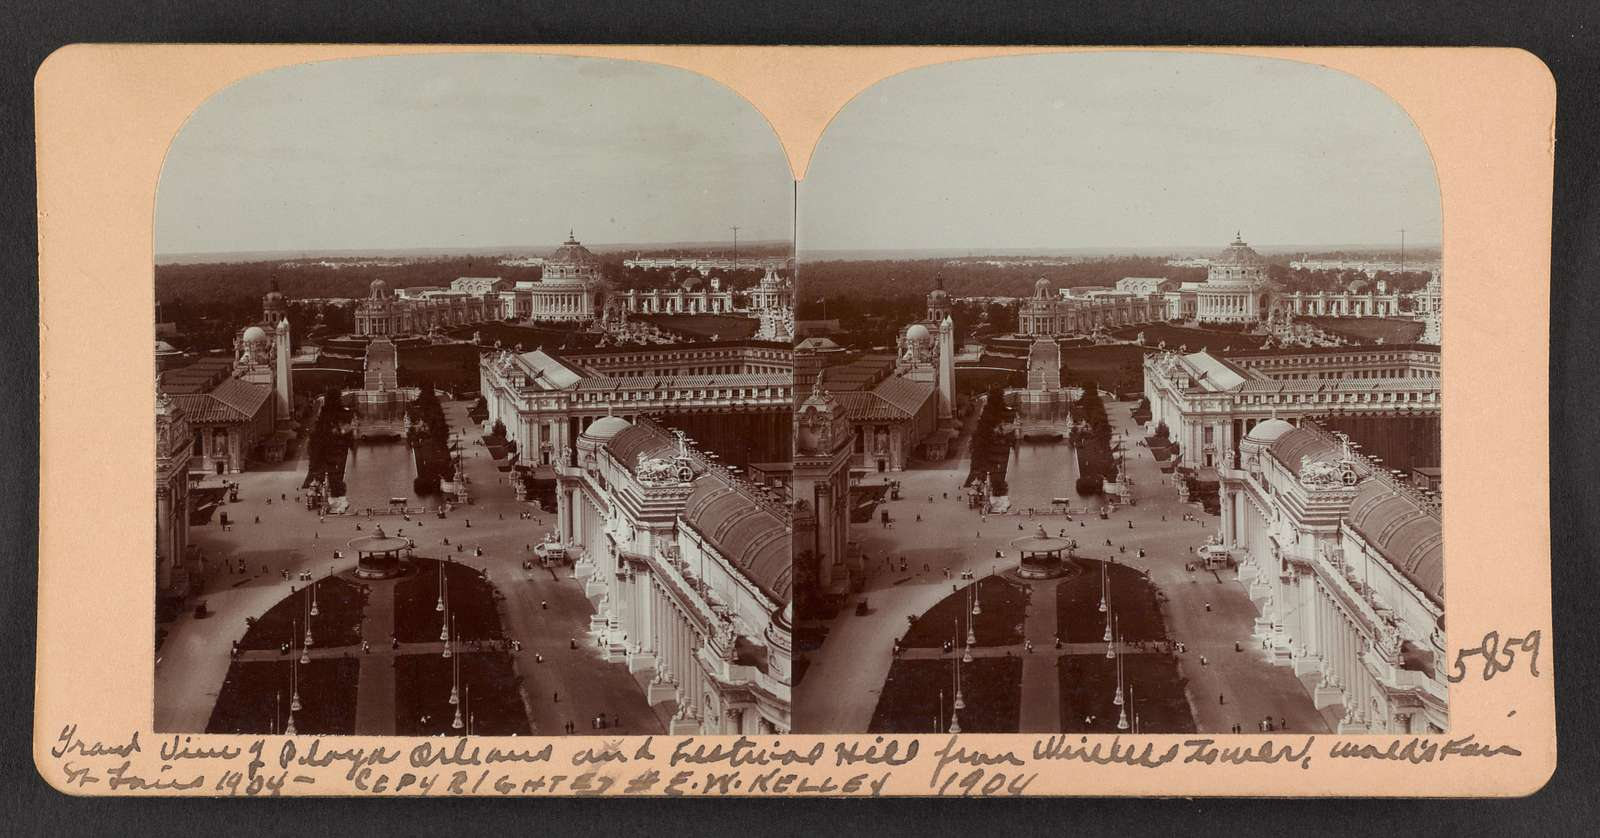 Grand view of Plaza Orleans and Festival Hill from wireless tower, World's Fair, St. Louis, 1904.